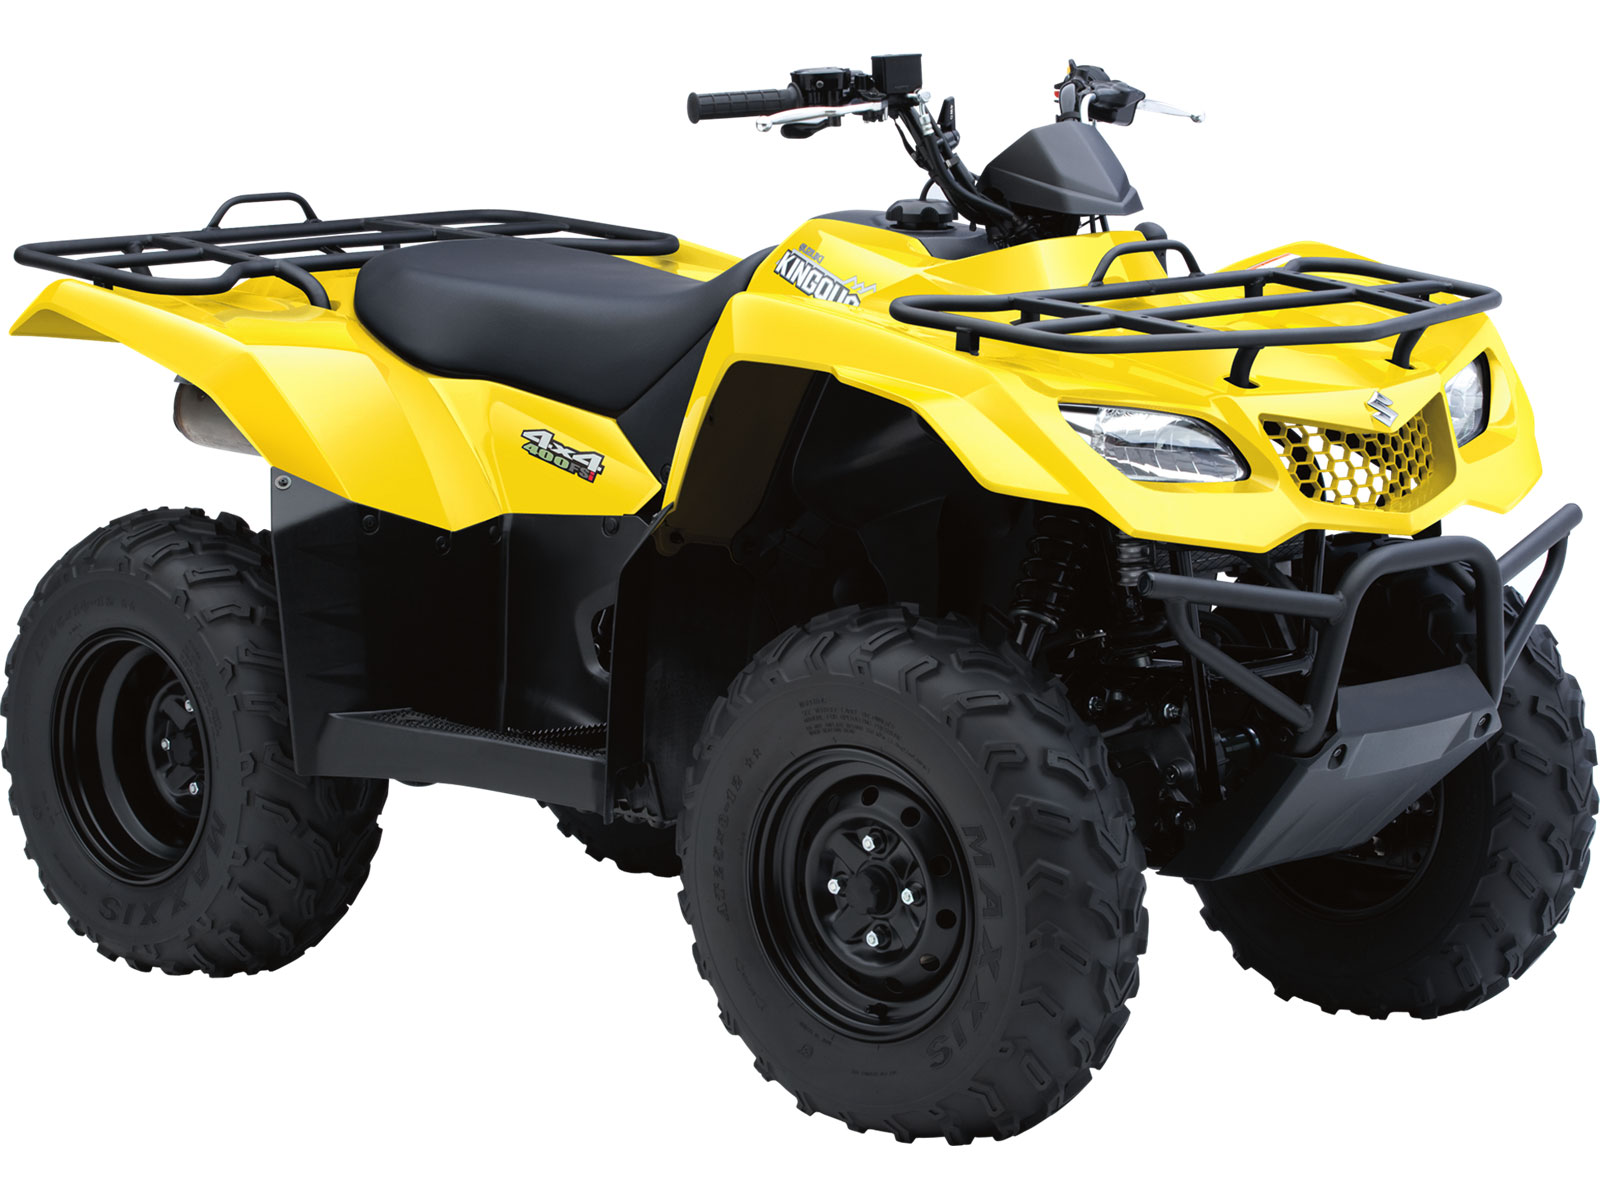 2011 suzuki kingquad 400fsi. Black Bedroom Furniture Sets. Home Design Ideas